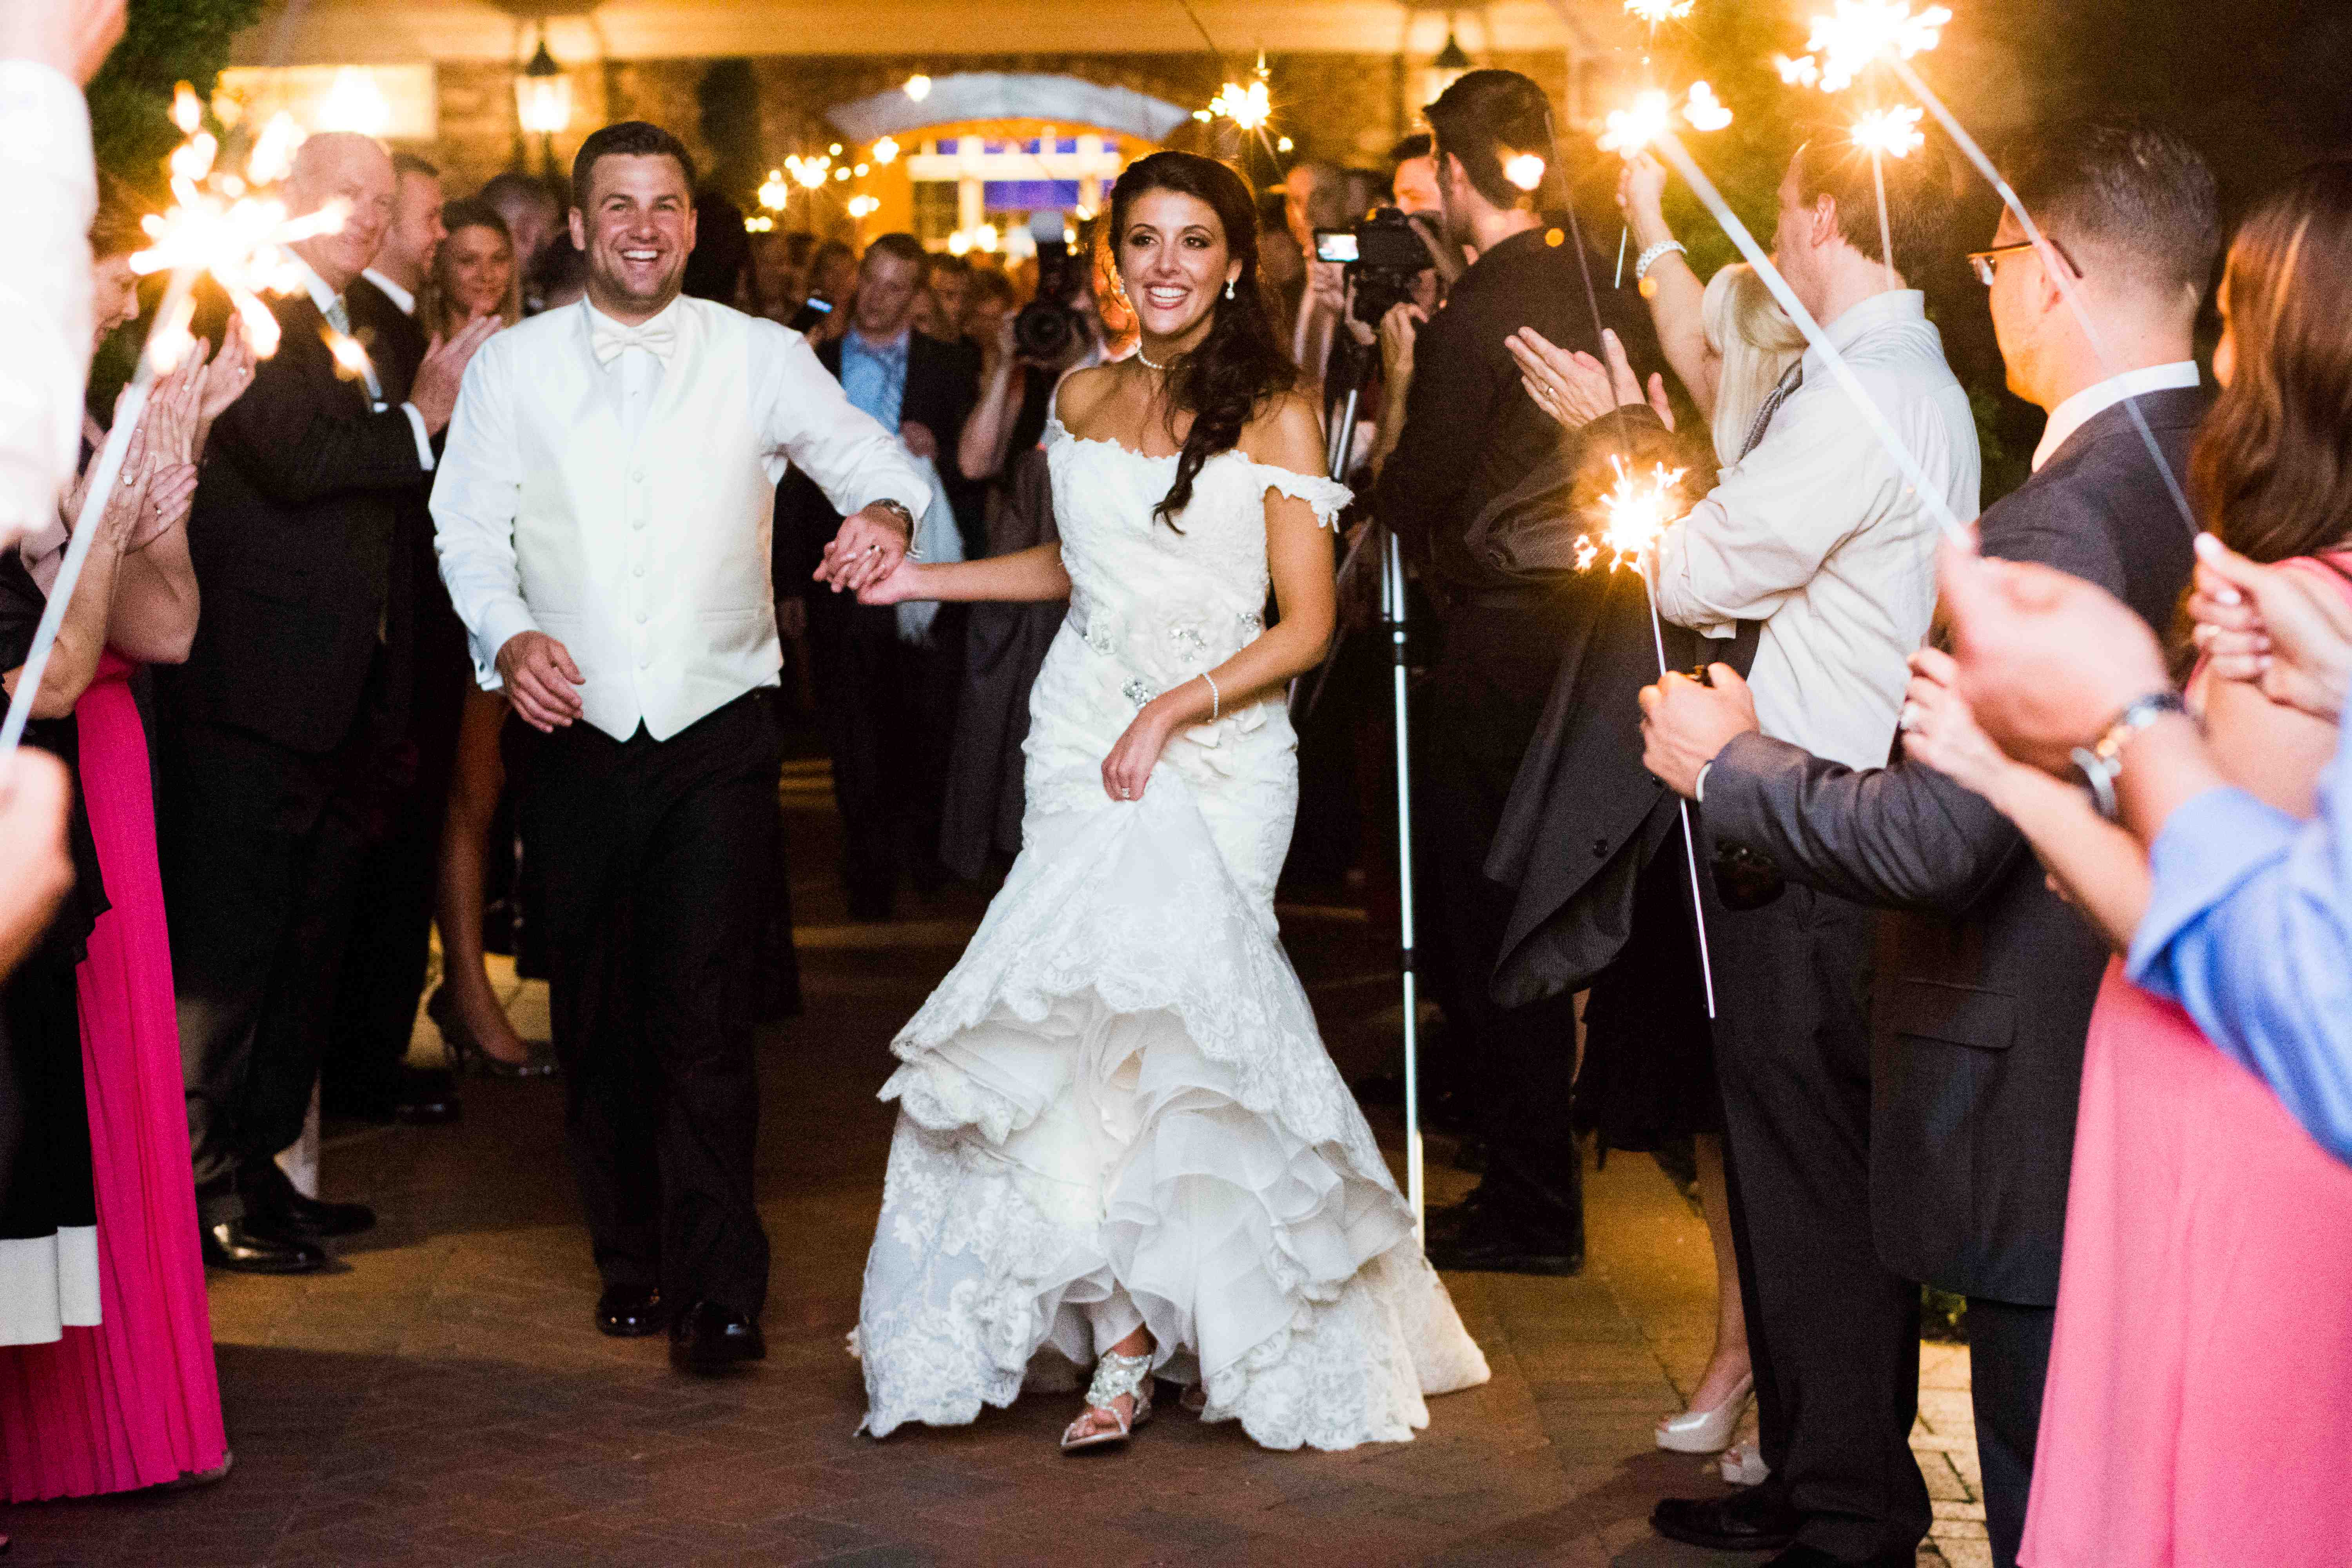 Bride and groom smile and run through tunnel of guests waving sparklers sparkler exit